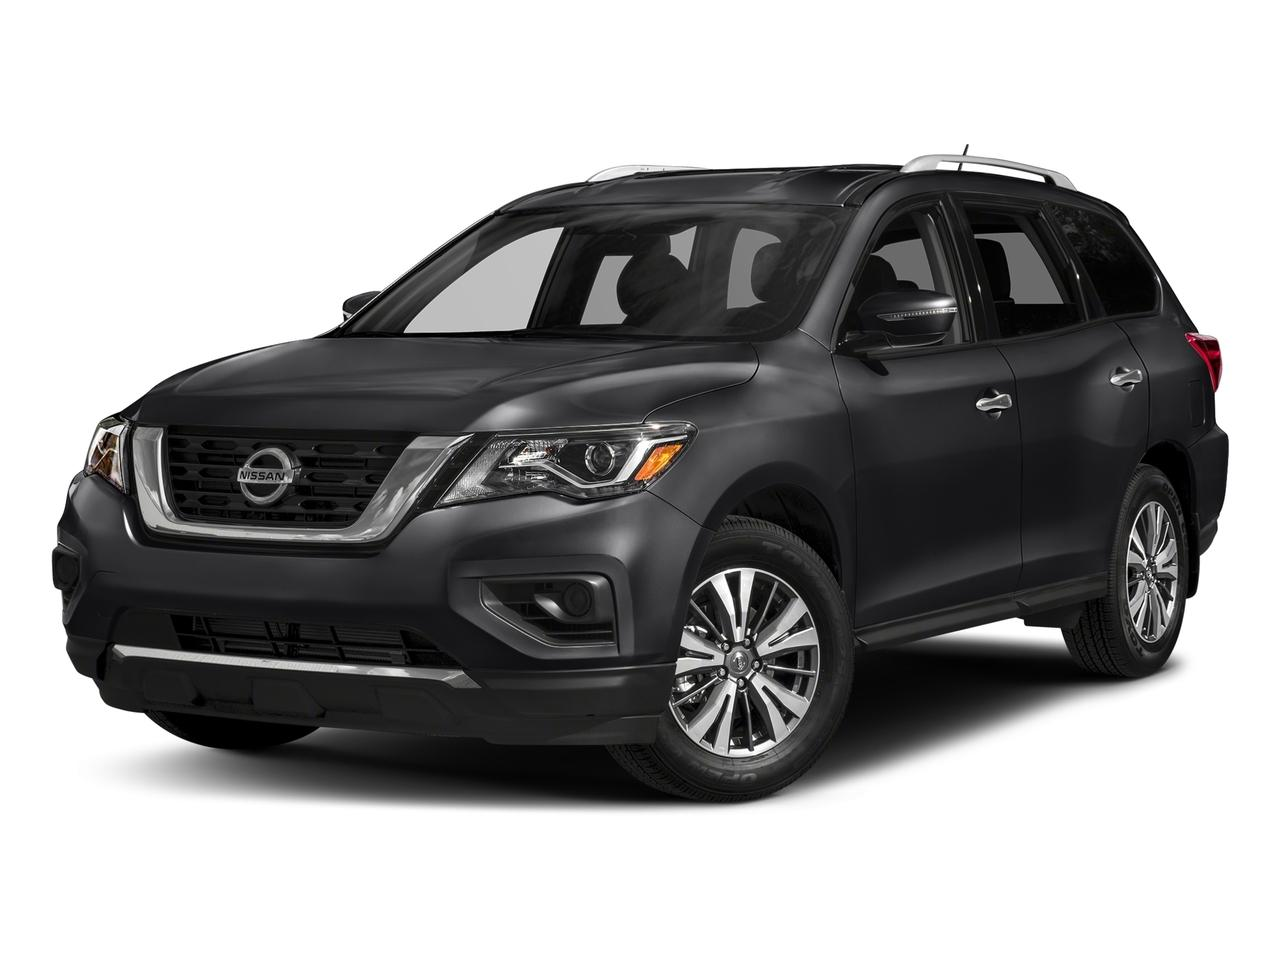 2017 Nissan Pathfinder Vehicle Photo in Bowie, MD 20716